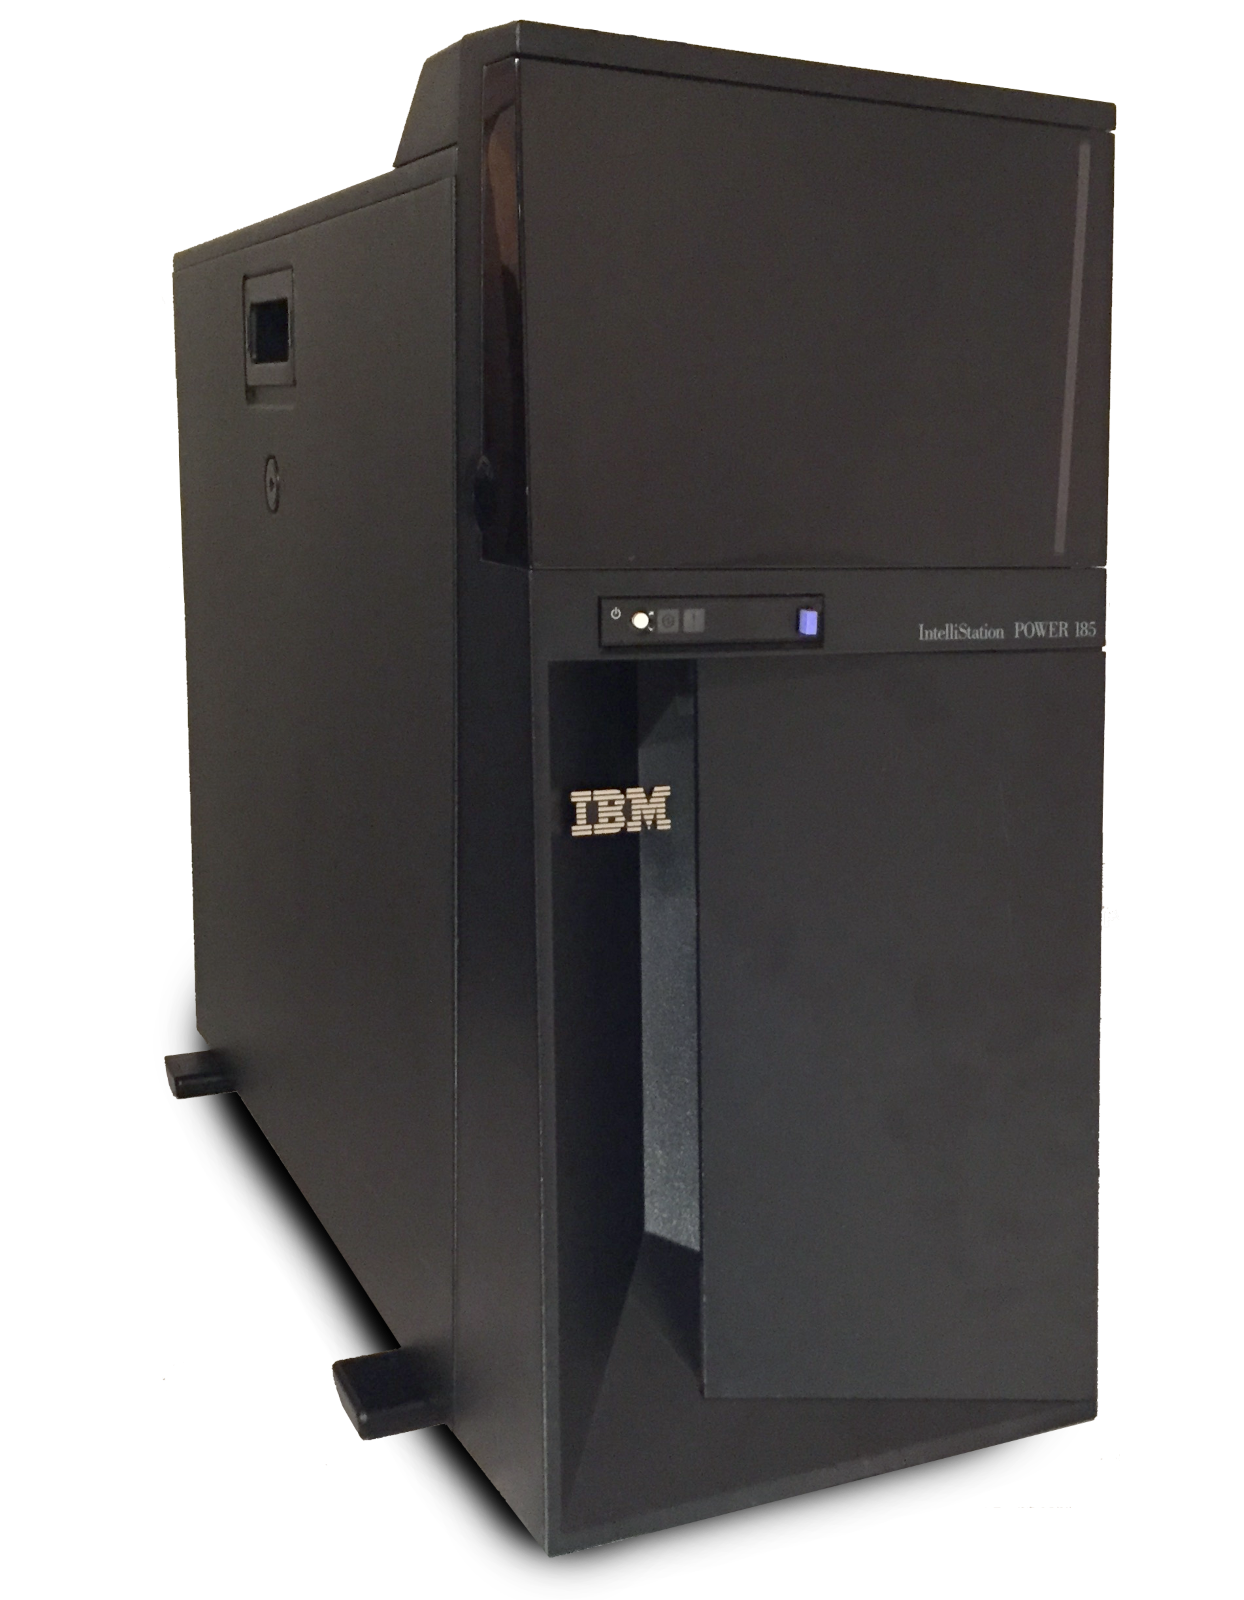 Ibm Pro Computer Video Graphics Cards Intellistation PNG Image